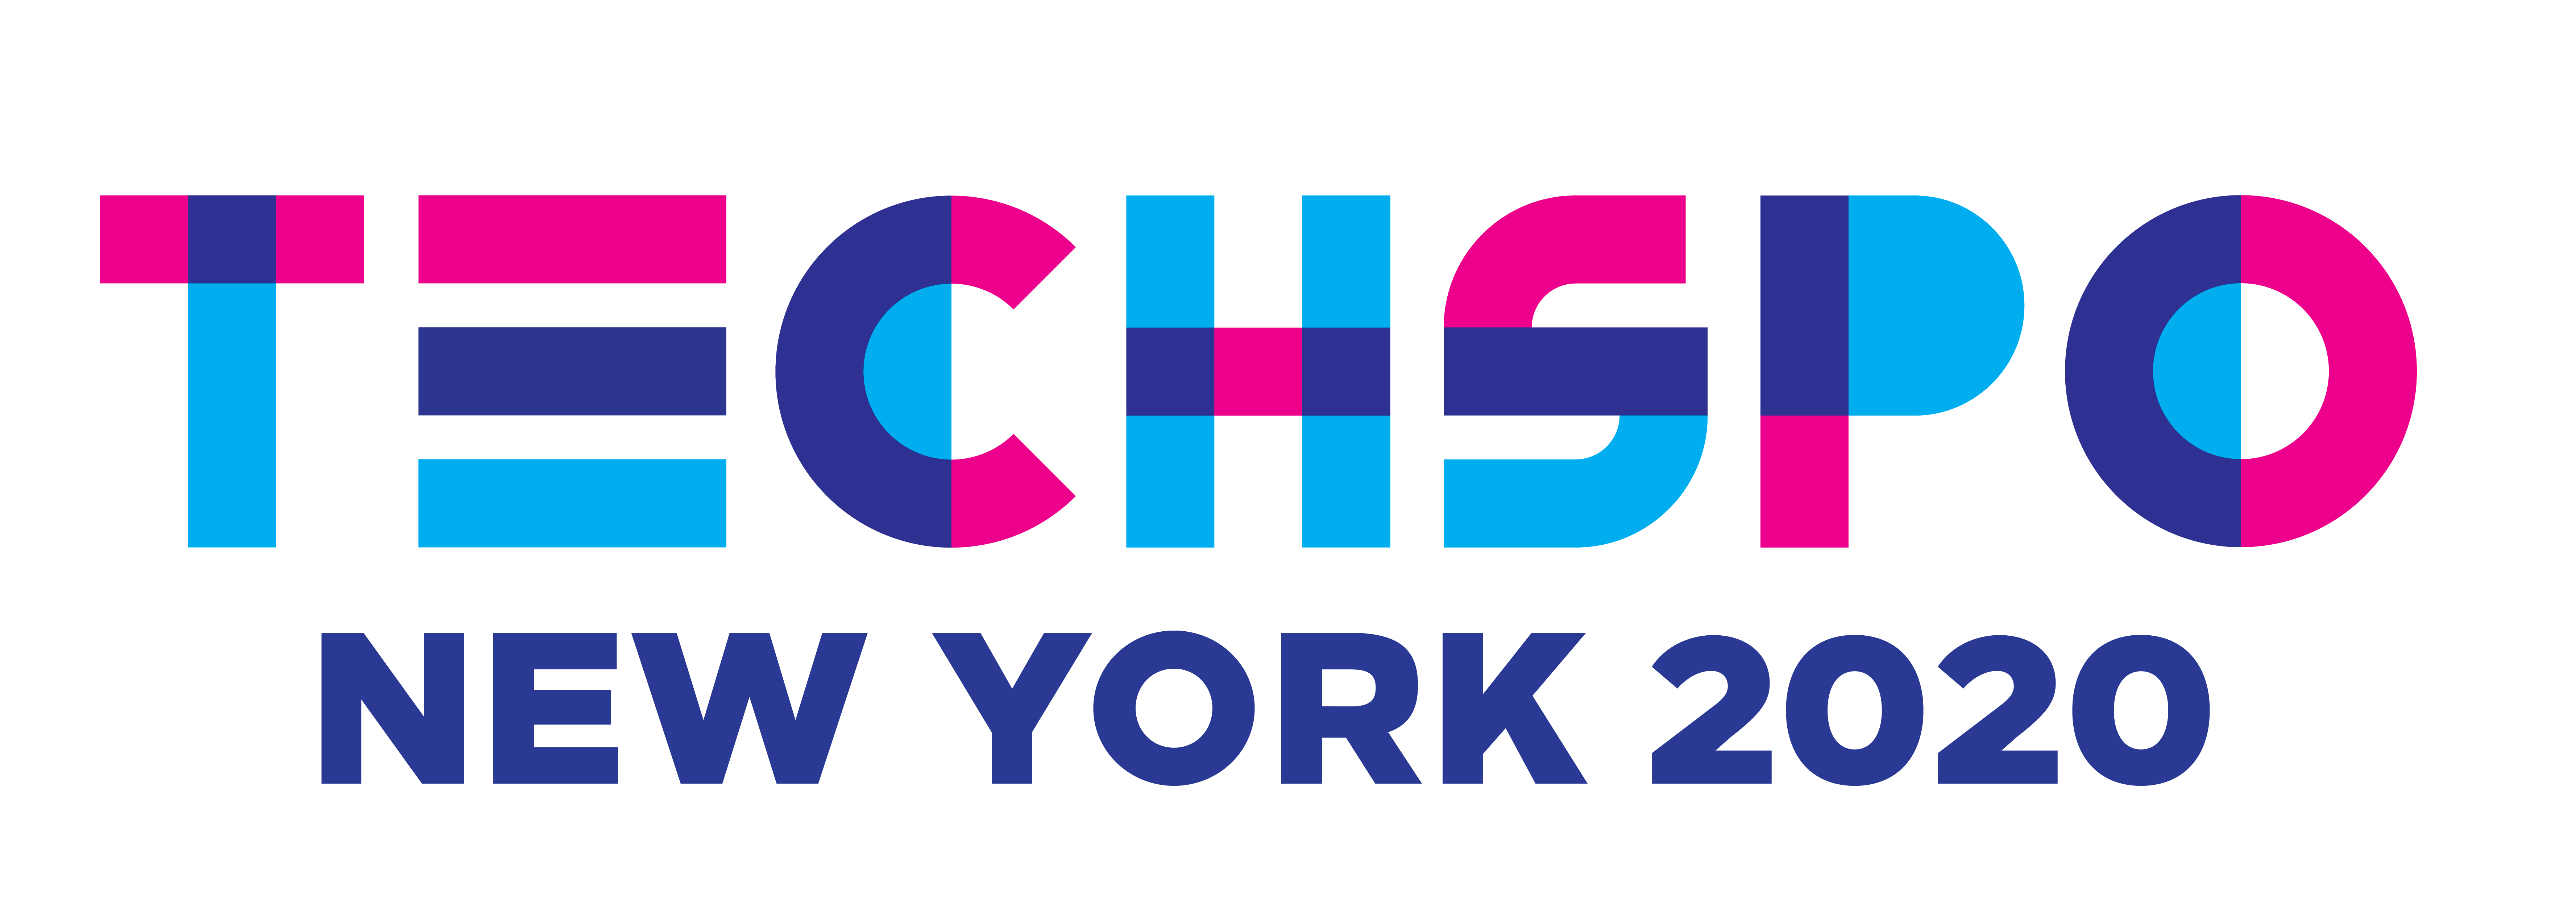 TECHSPO New York